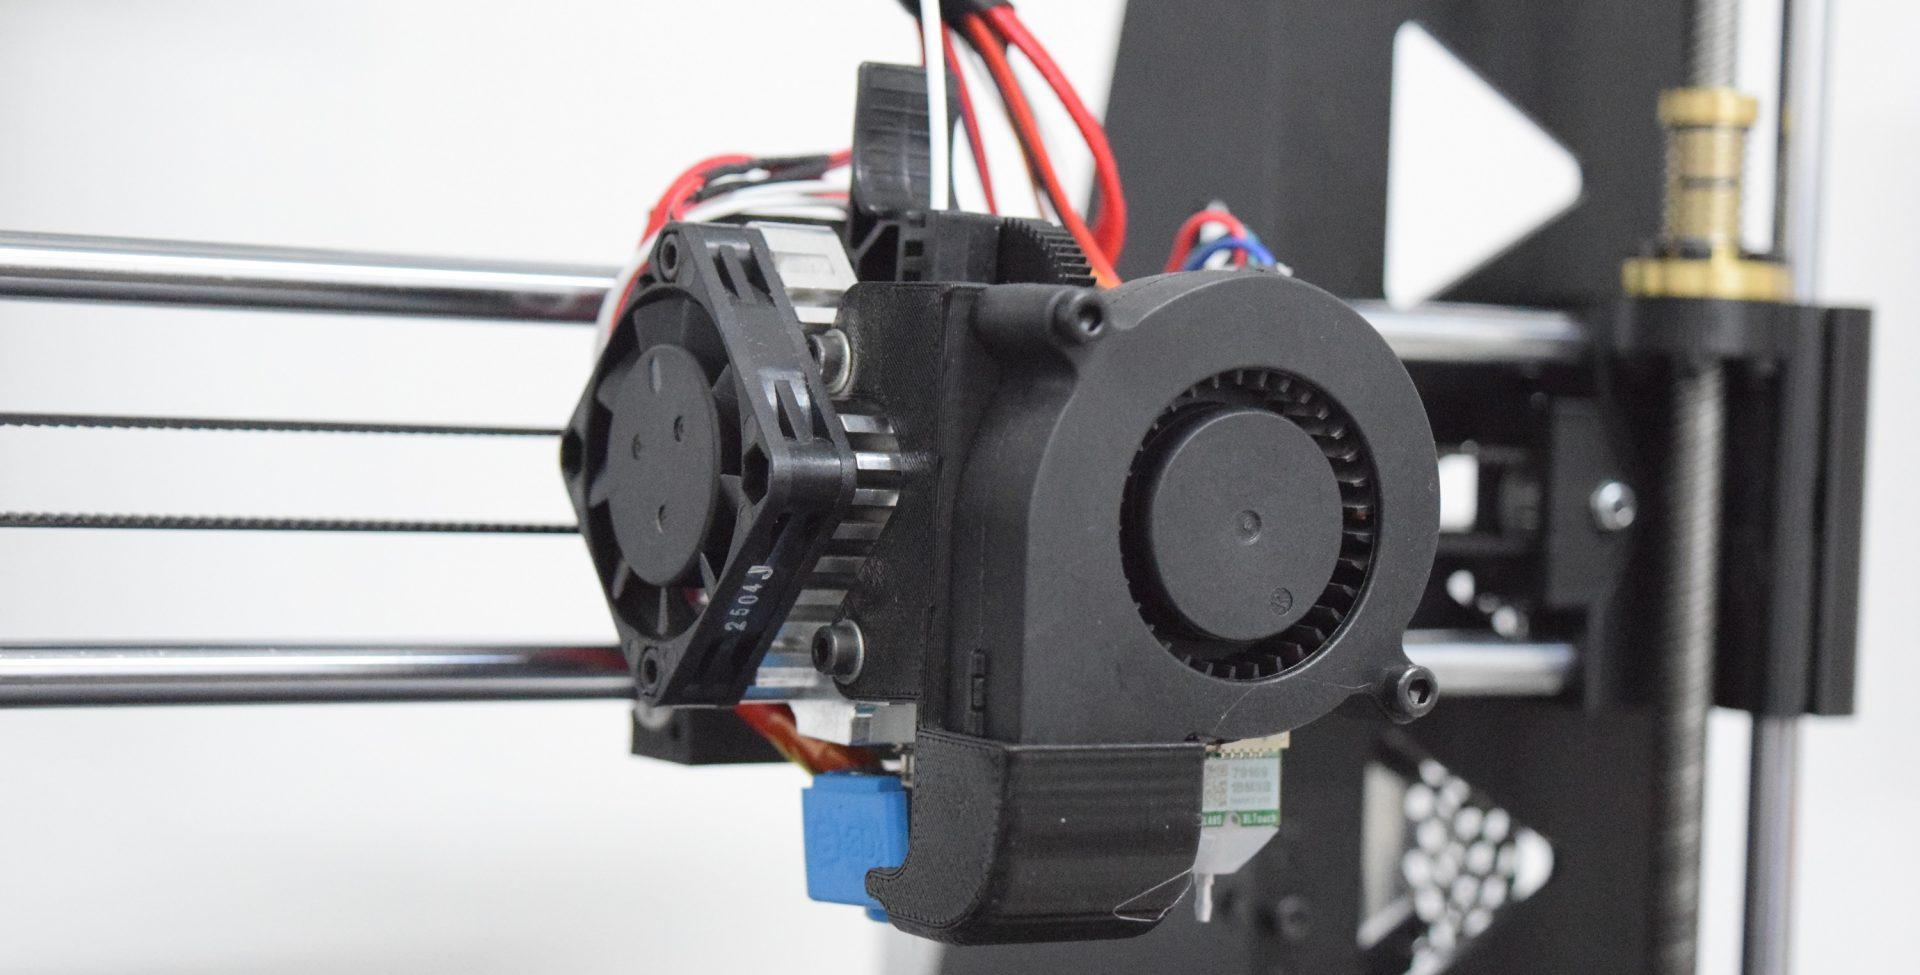 Etiqueta: marlin 3dprinter